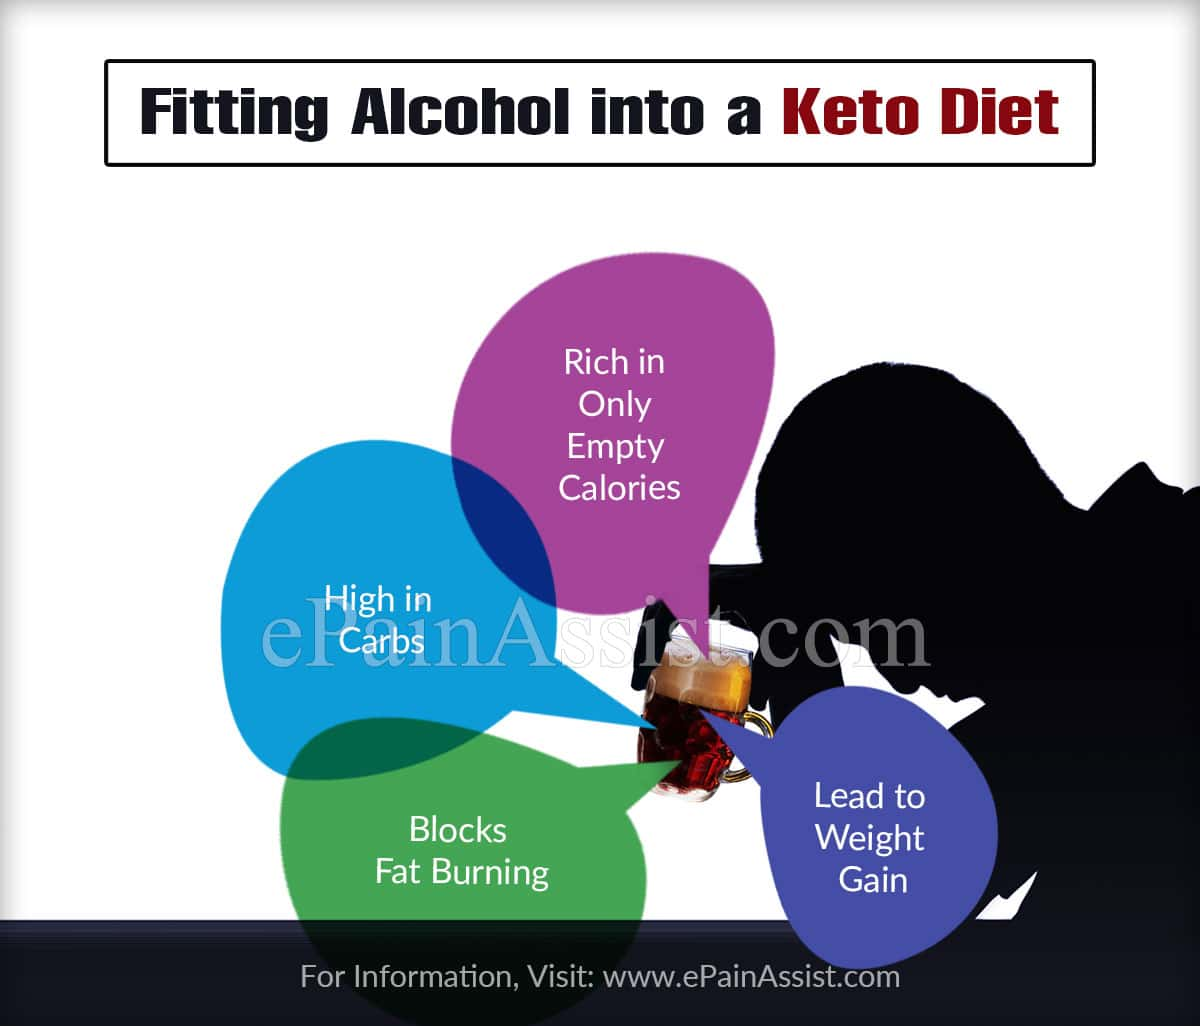 Fitting Alcohol into a Keto Diet